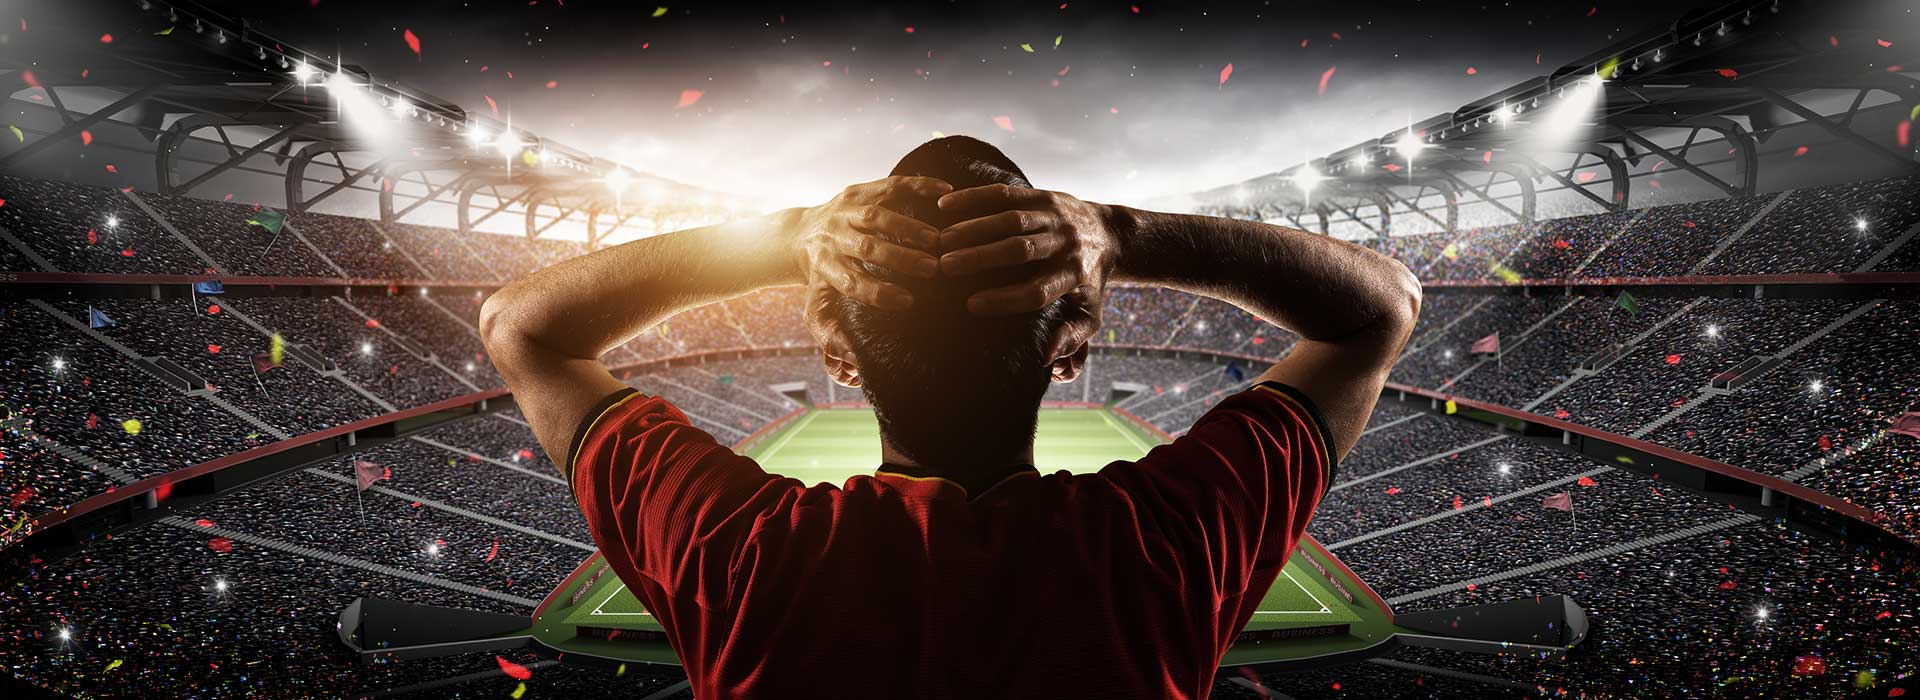 CHAMPIONS LEAGUE FINAL: BETTING PREVIEW